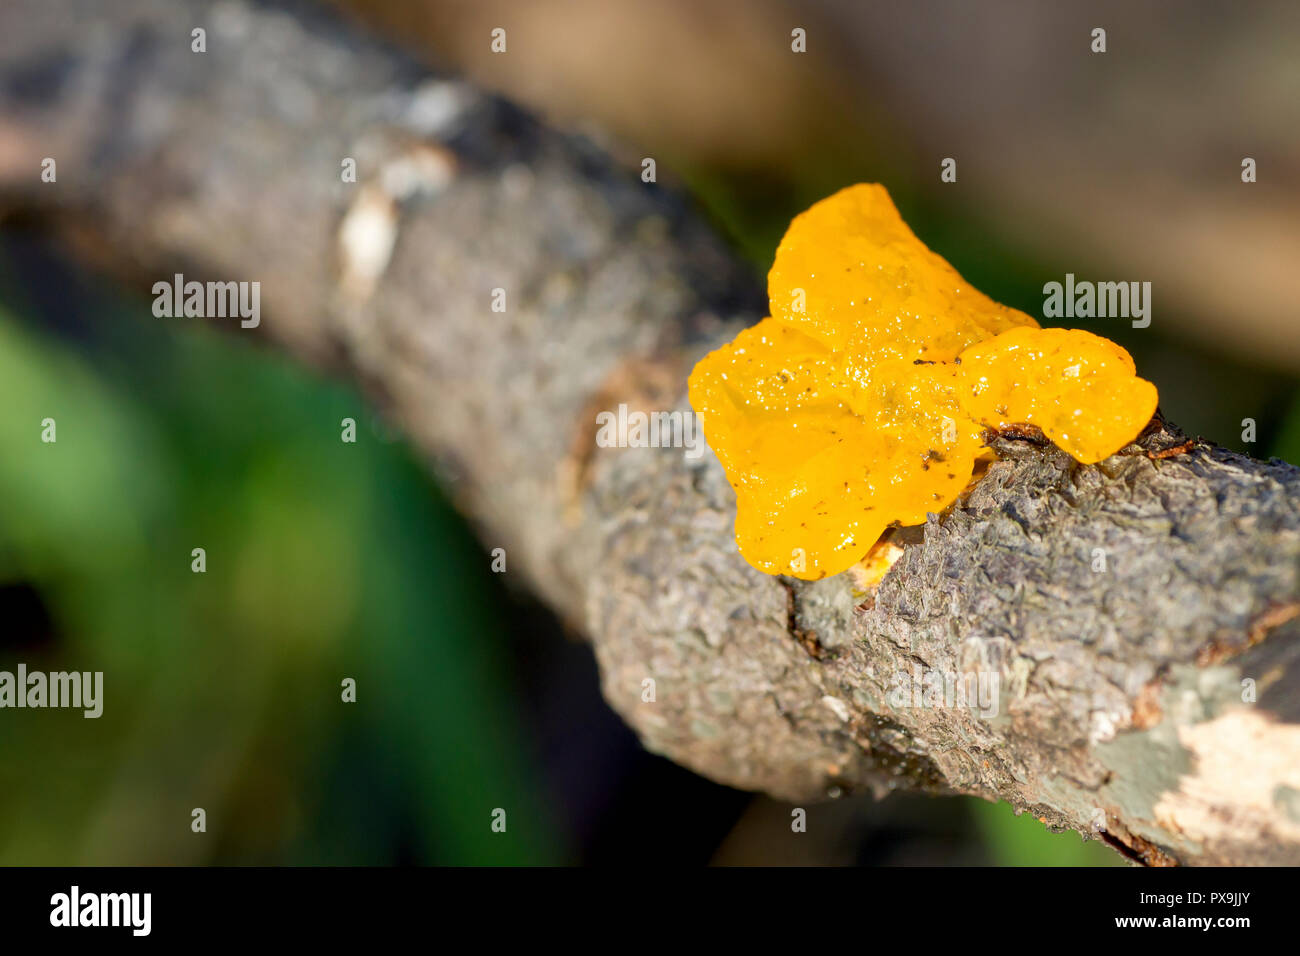 Yellow Brain Fungus (tremella mesenterica),close up of the fruiting body growing from the branch of a fallen tree. - Stock Image